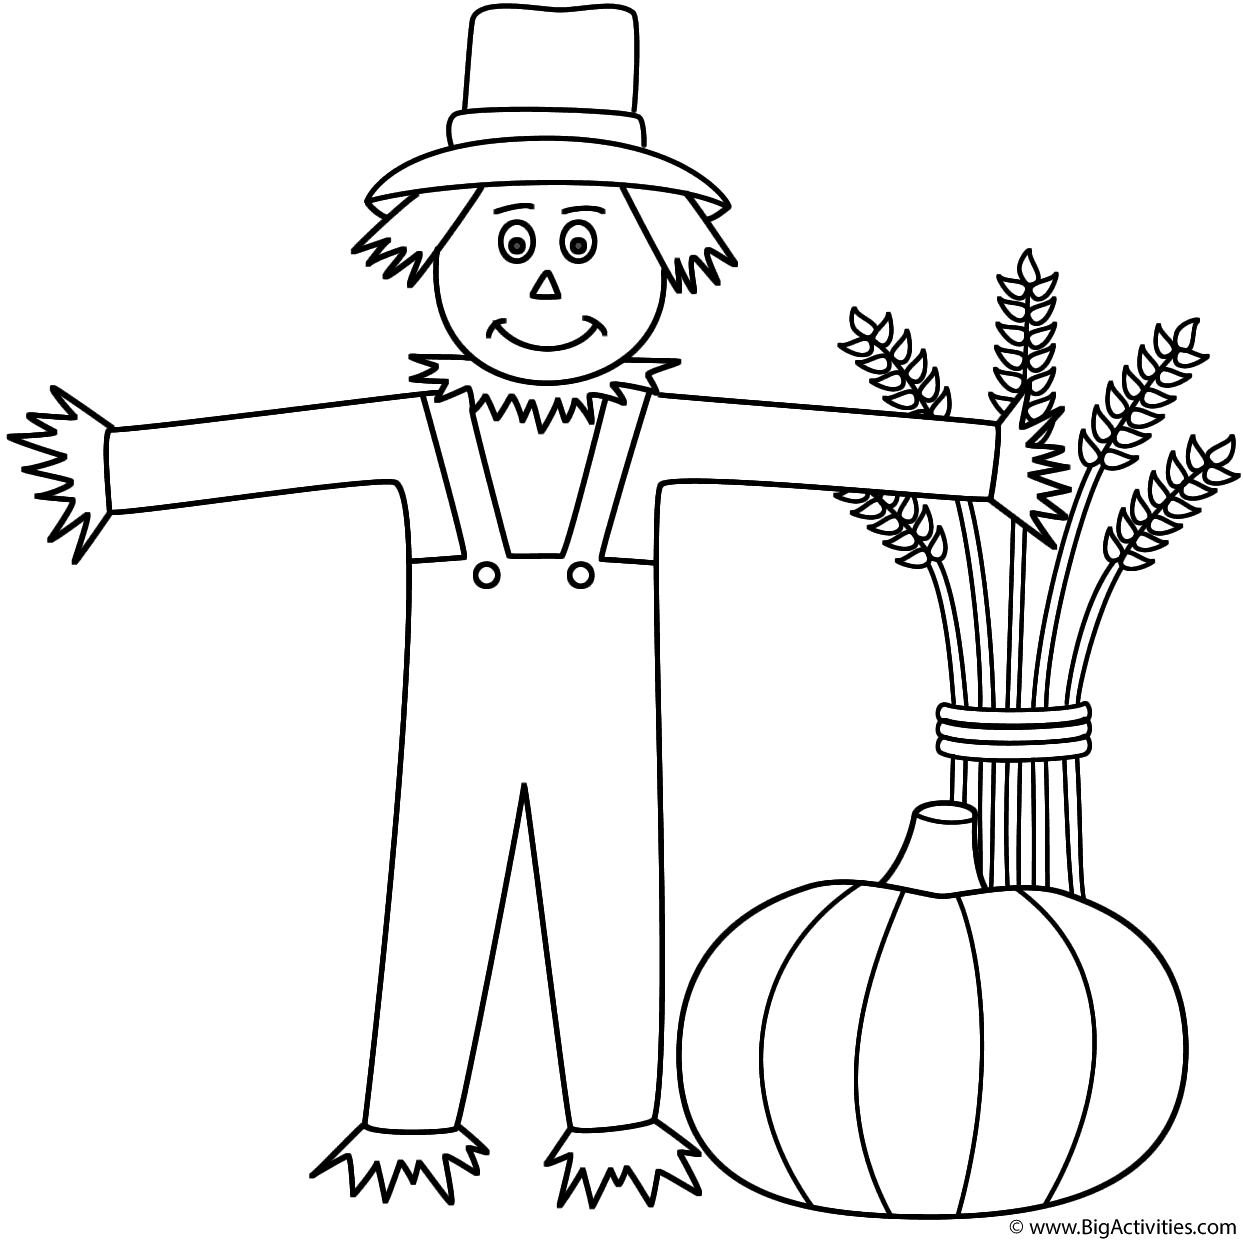 Scarecrow with wheat sheaf and